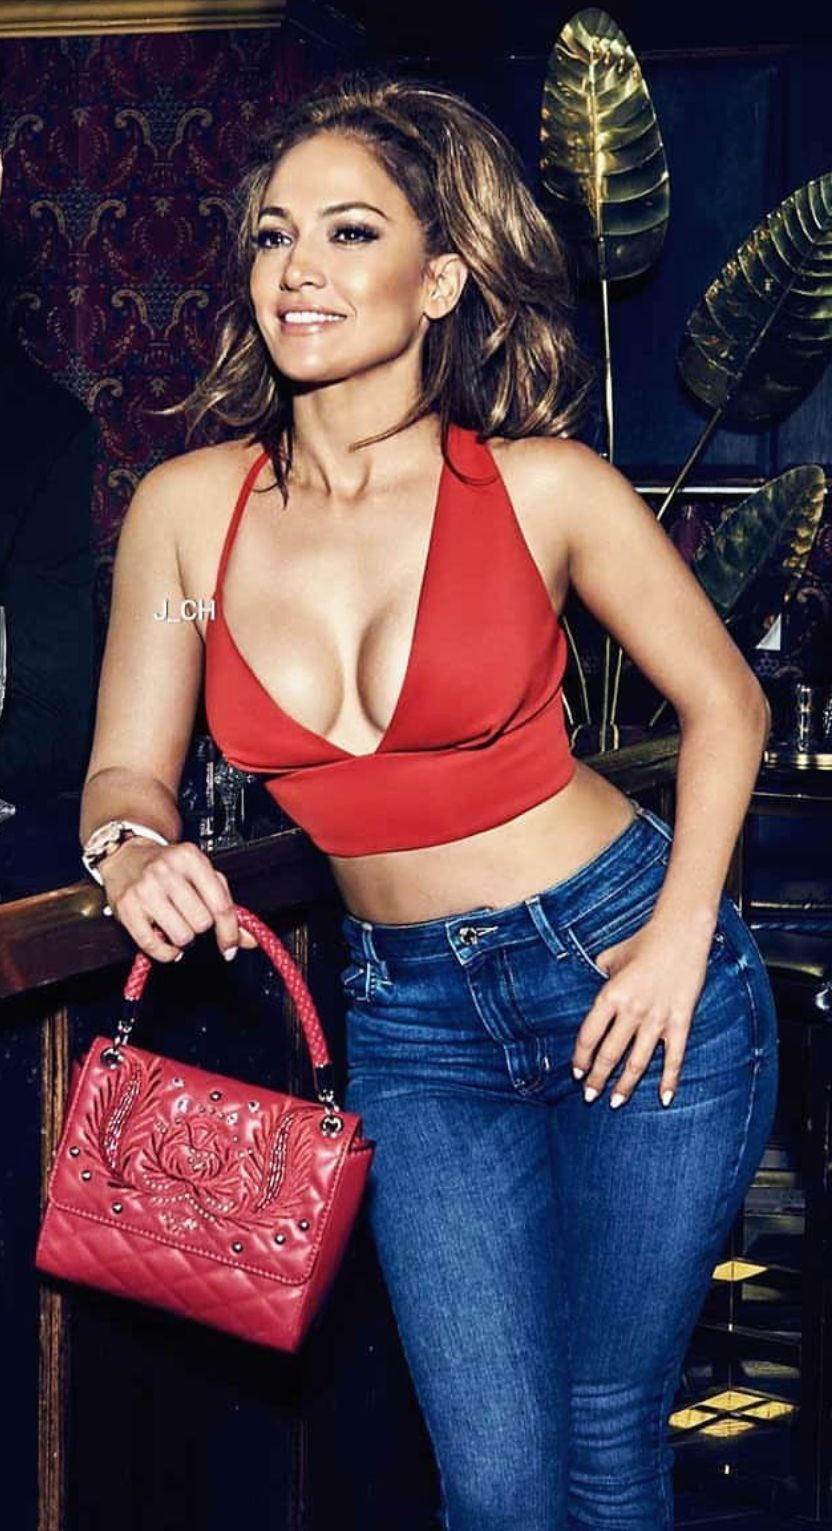 4597265f98b22 Pinterest: DEBORAHPRAHA ♥ Jennifer lopez for guess campaign ...